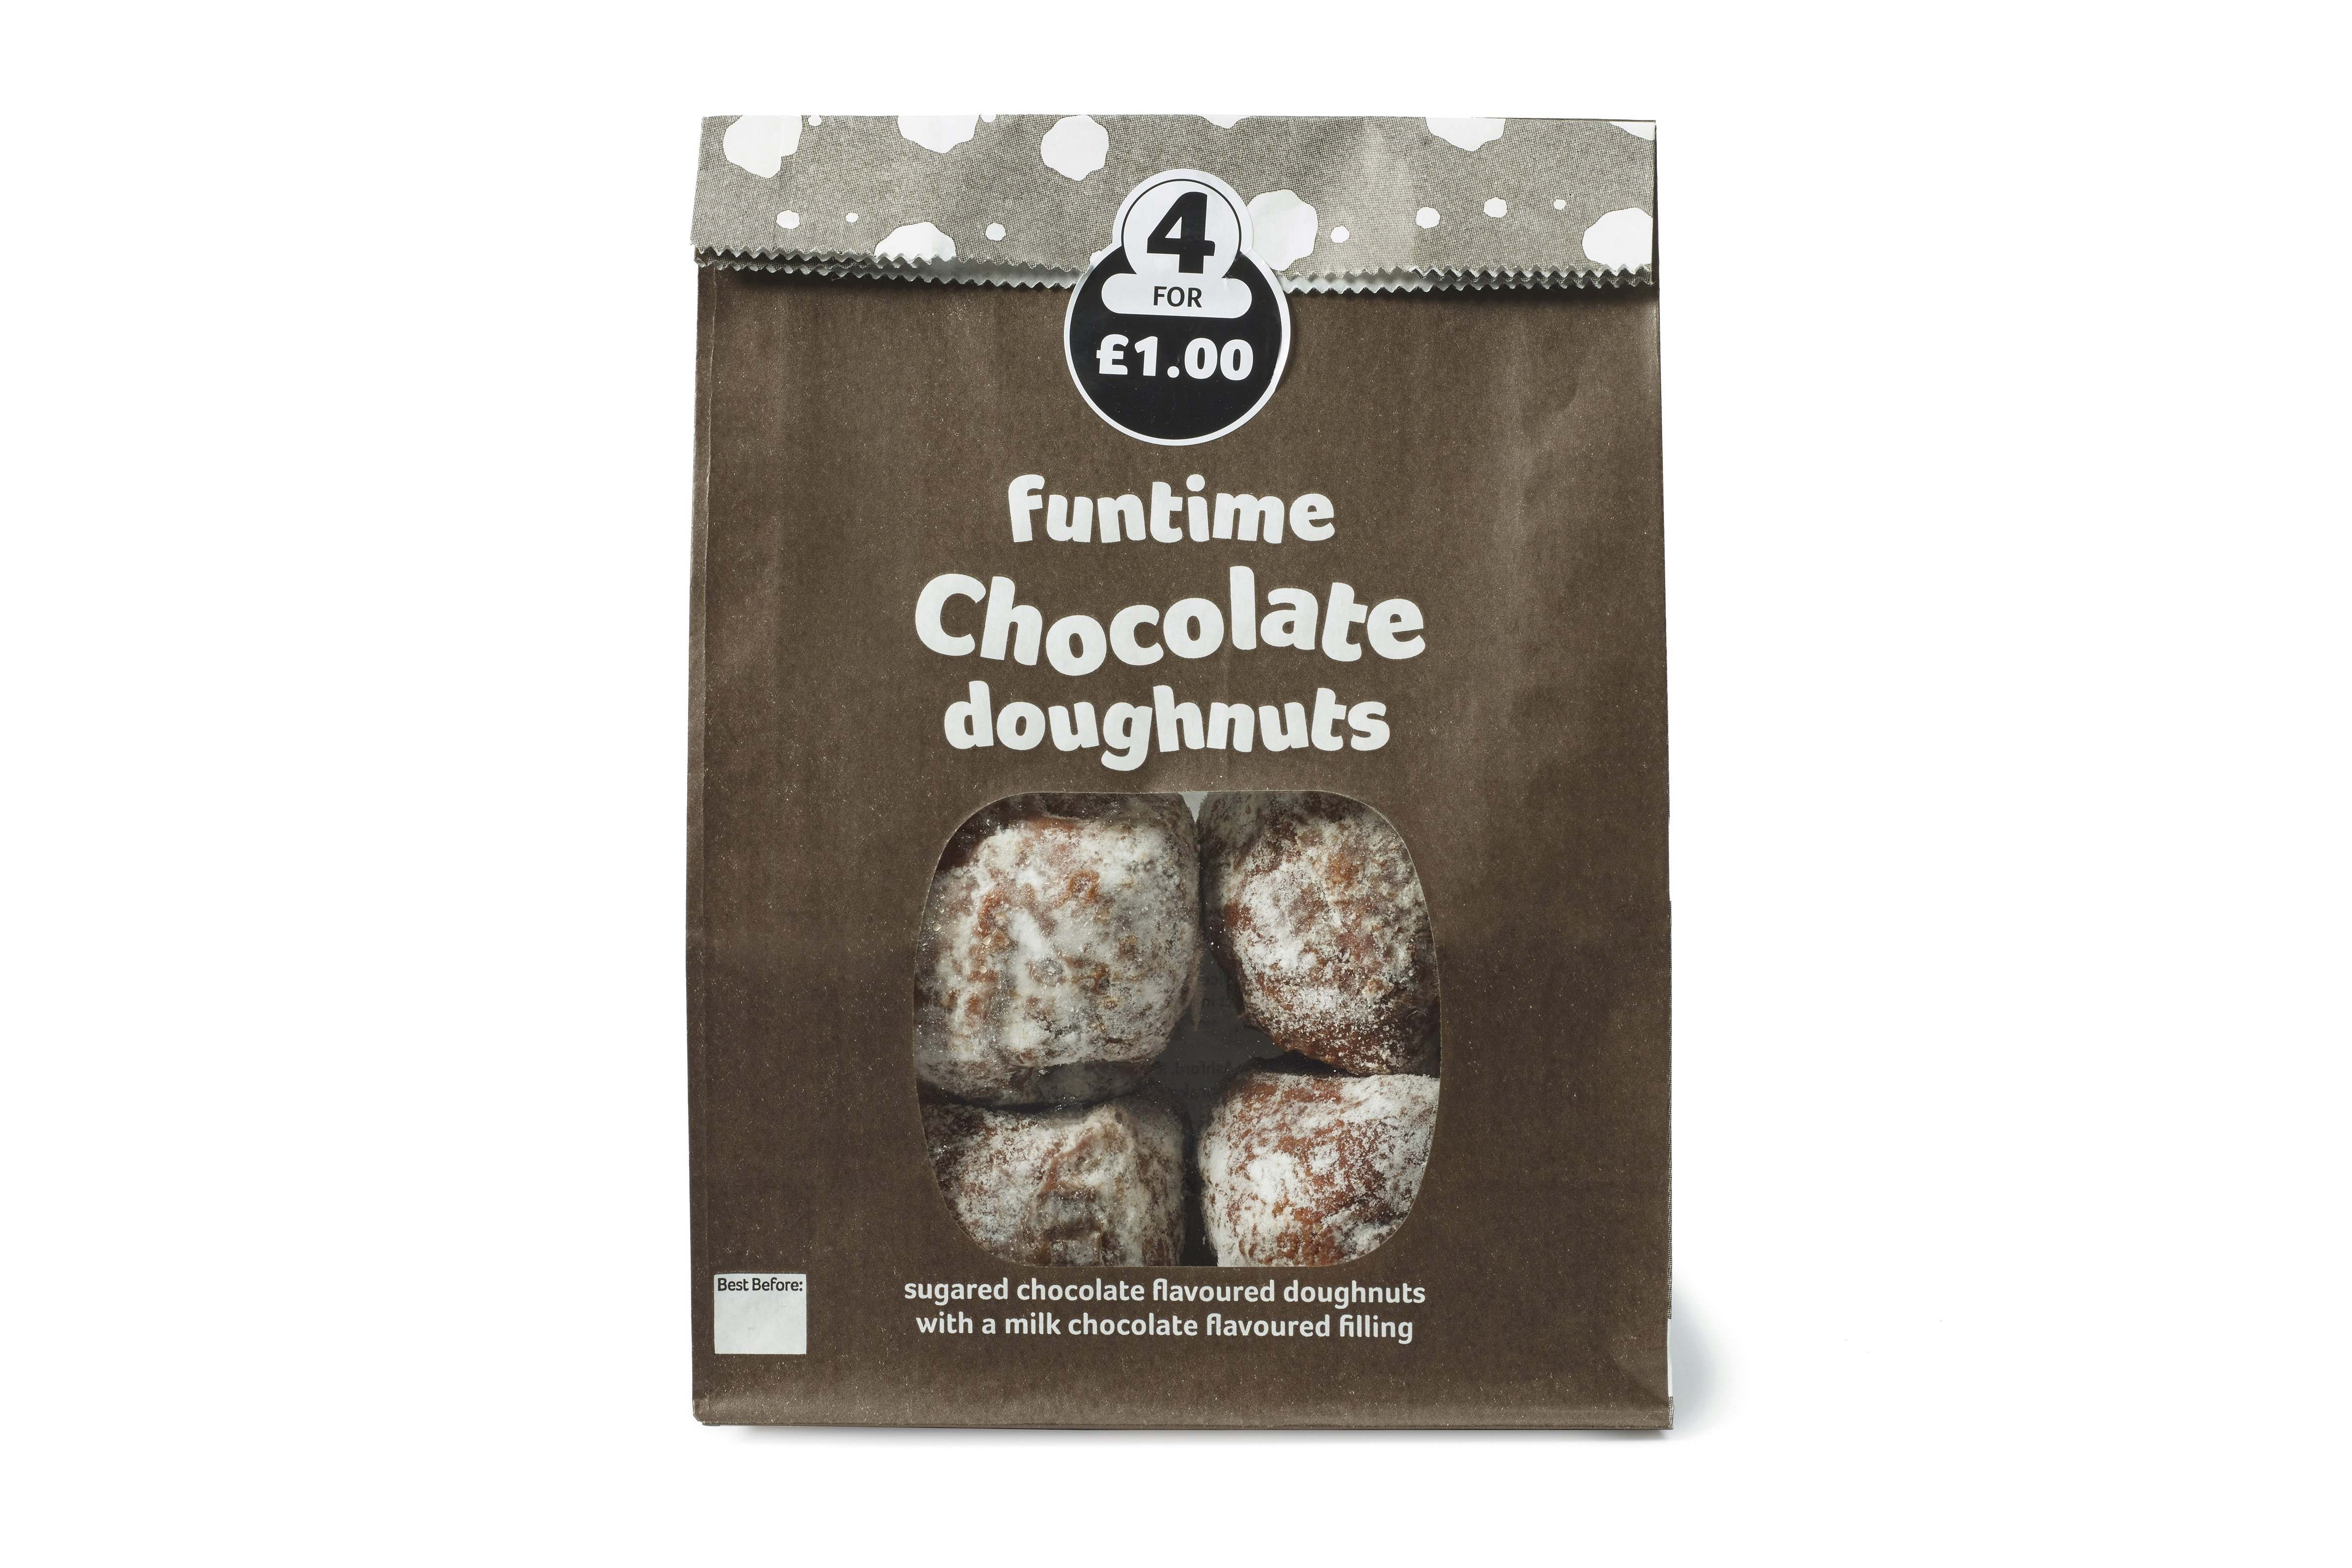 Funtime Double Chocolate Doughnuts